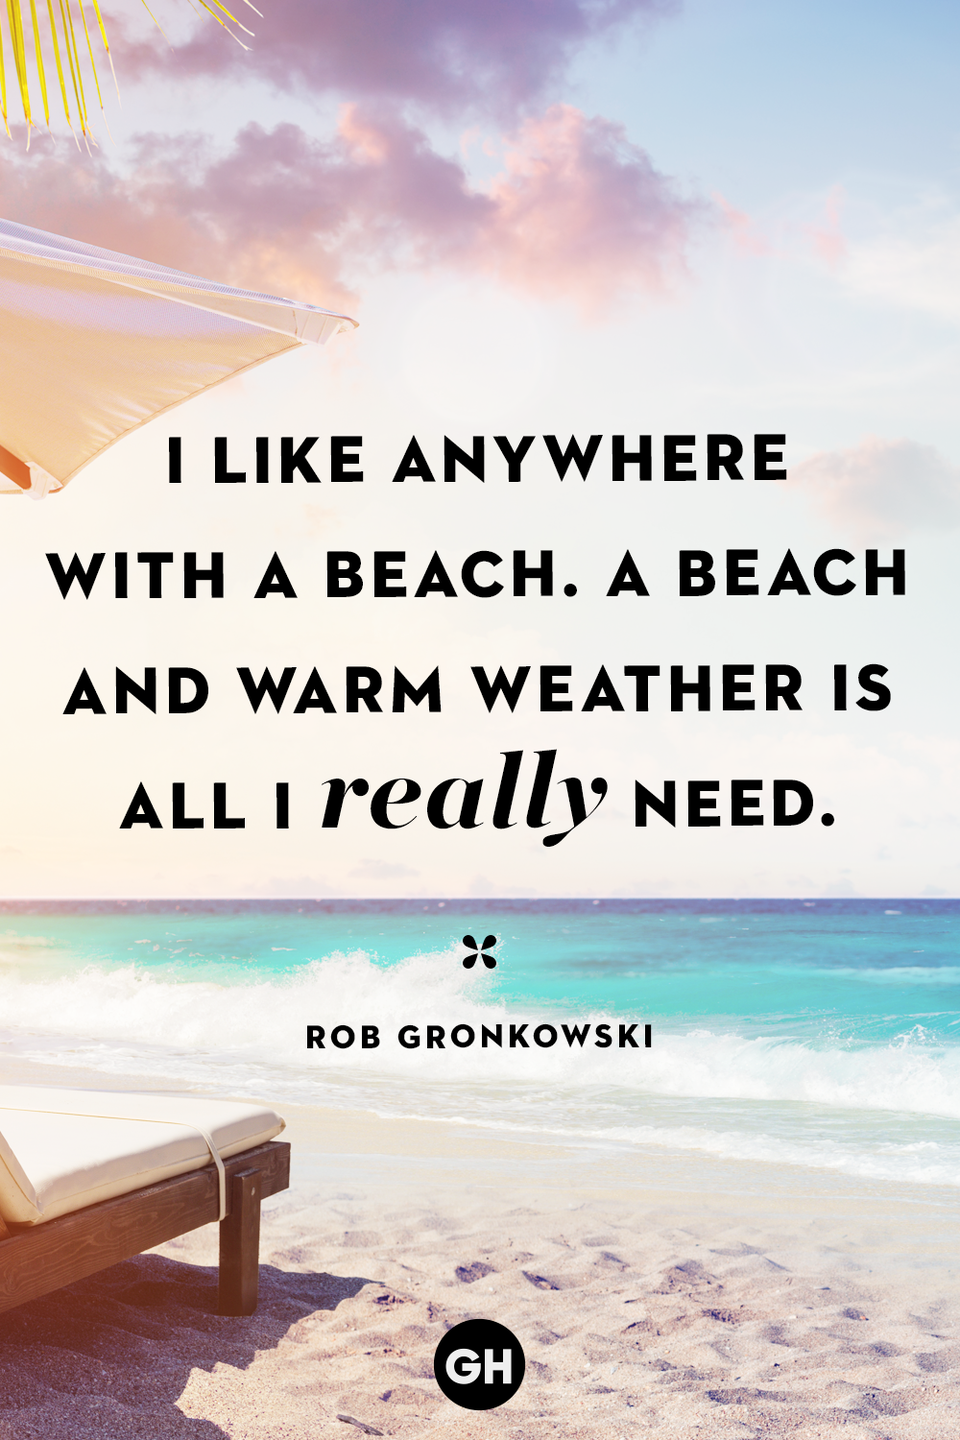 <p>I like anywhere with a beach. A beach and warm weather is all I really need.</p>